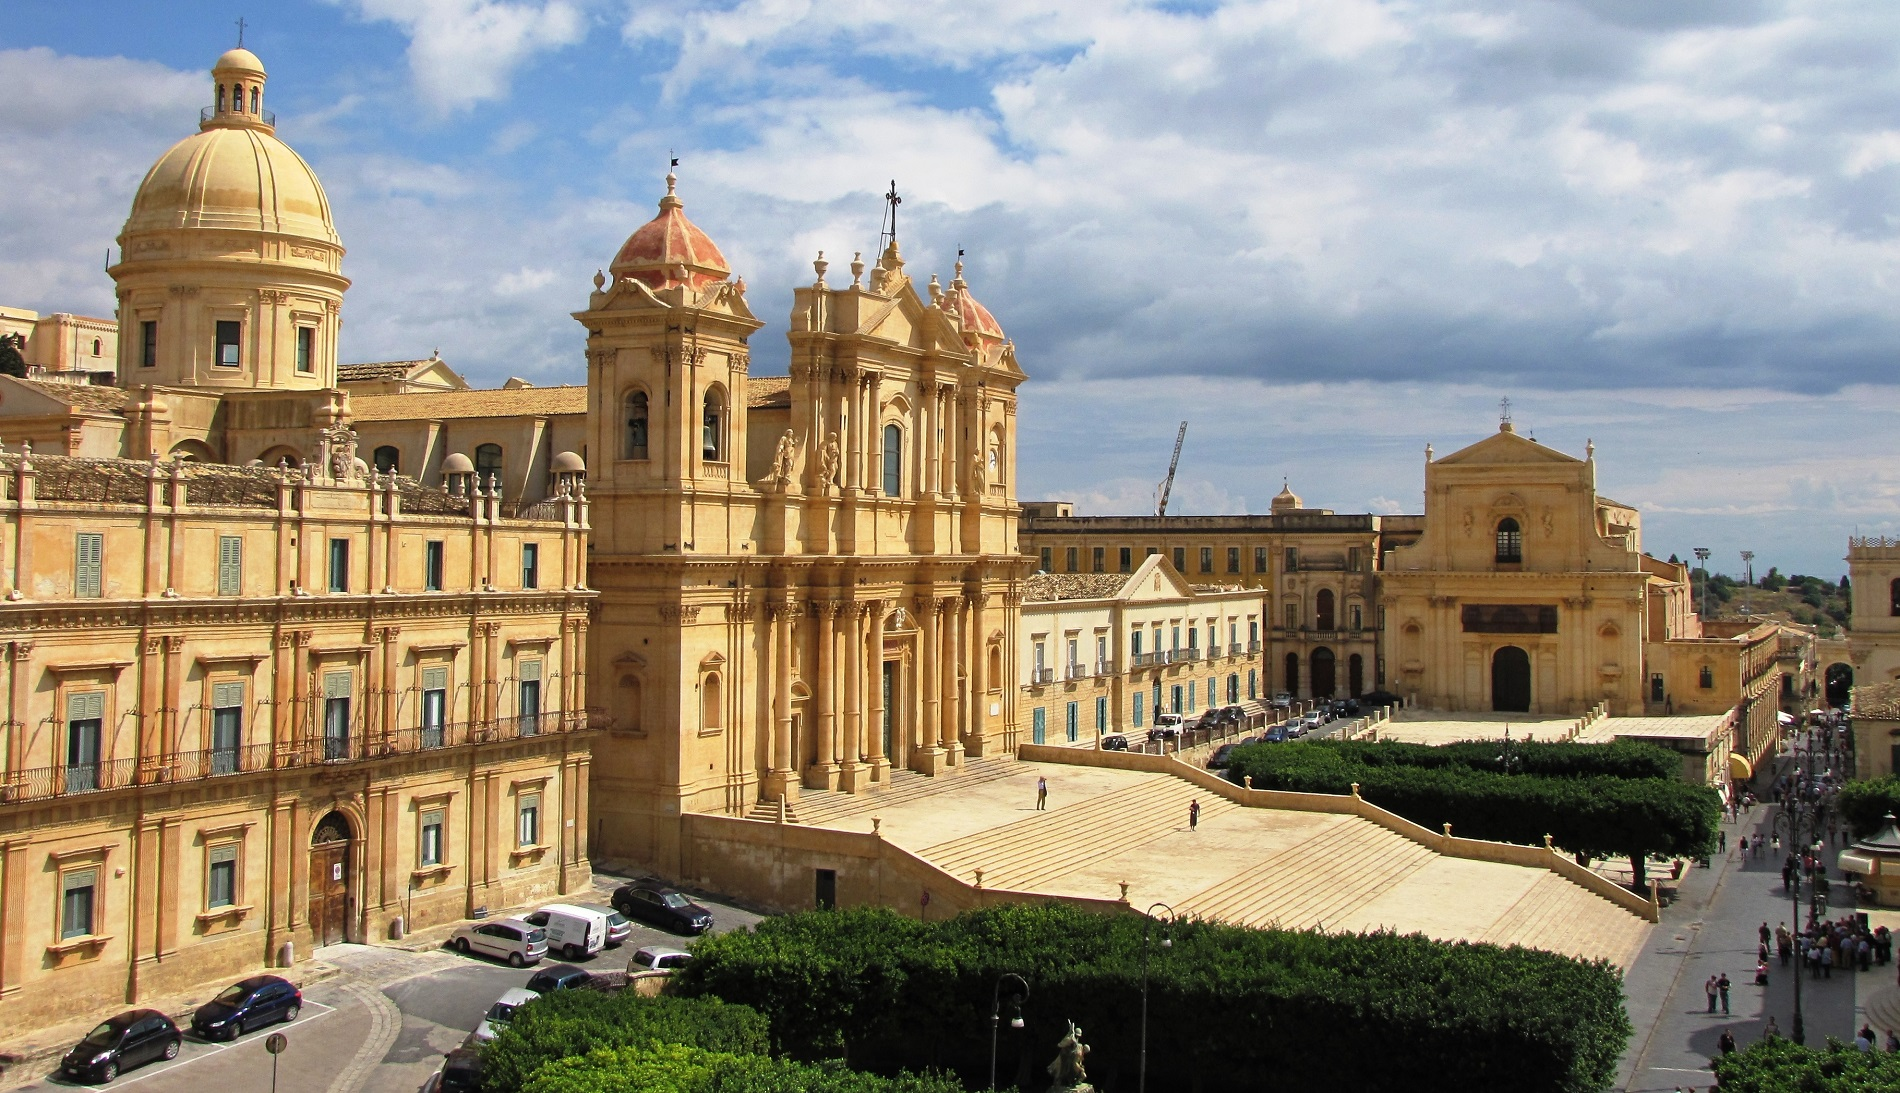 Basilica_Cattedrale_San_Nicoló-Noto